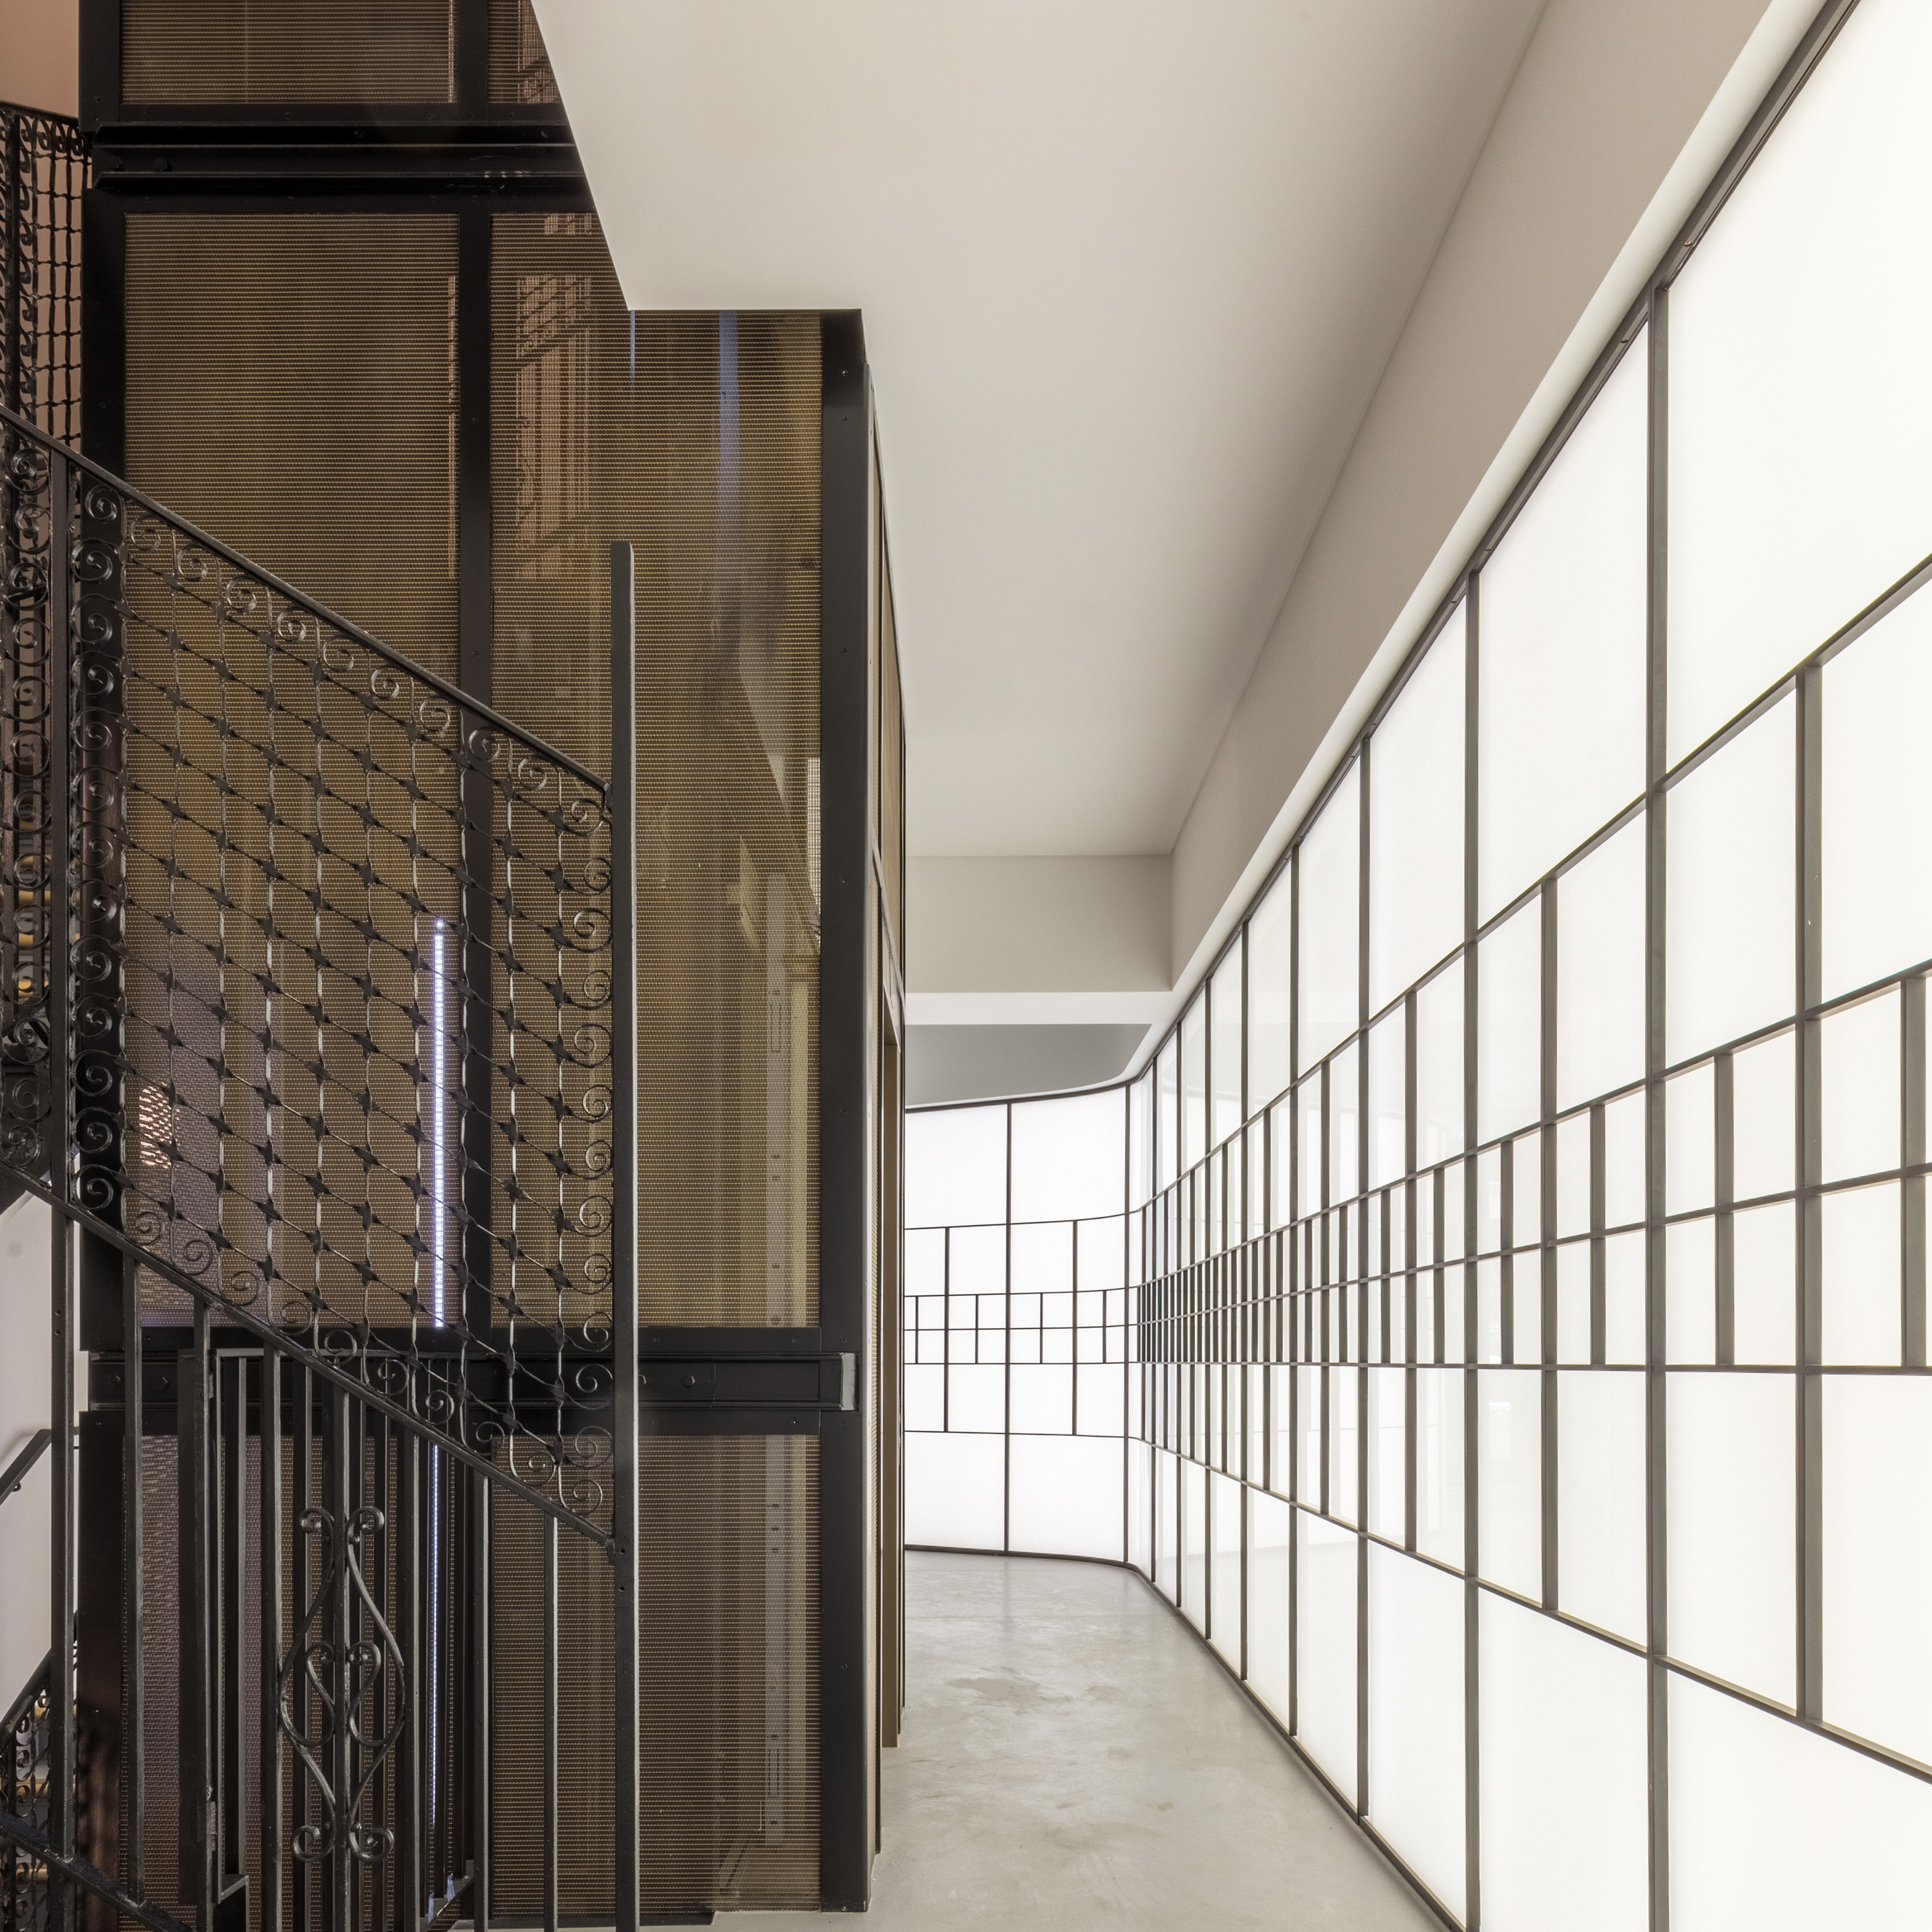 """The fine woven wire mesh adds a contemporary yet classic element that """"meshes"""" well with the historical nature of the Minerva Building."""